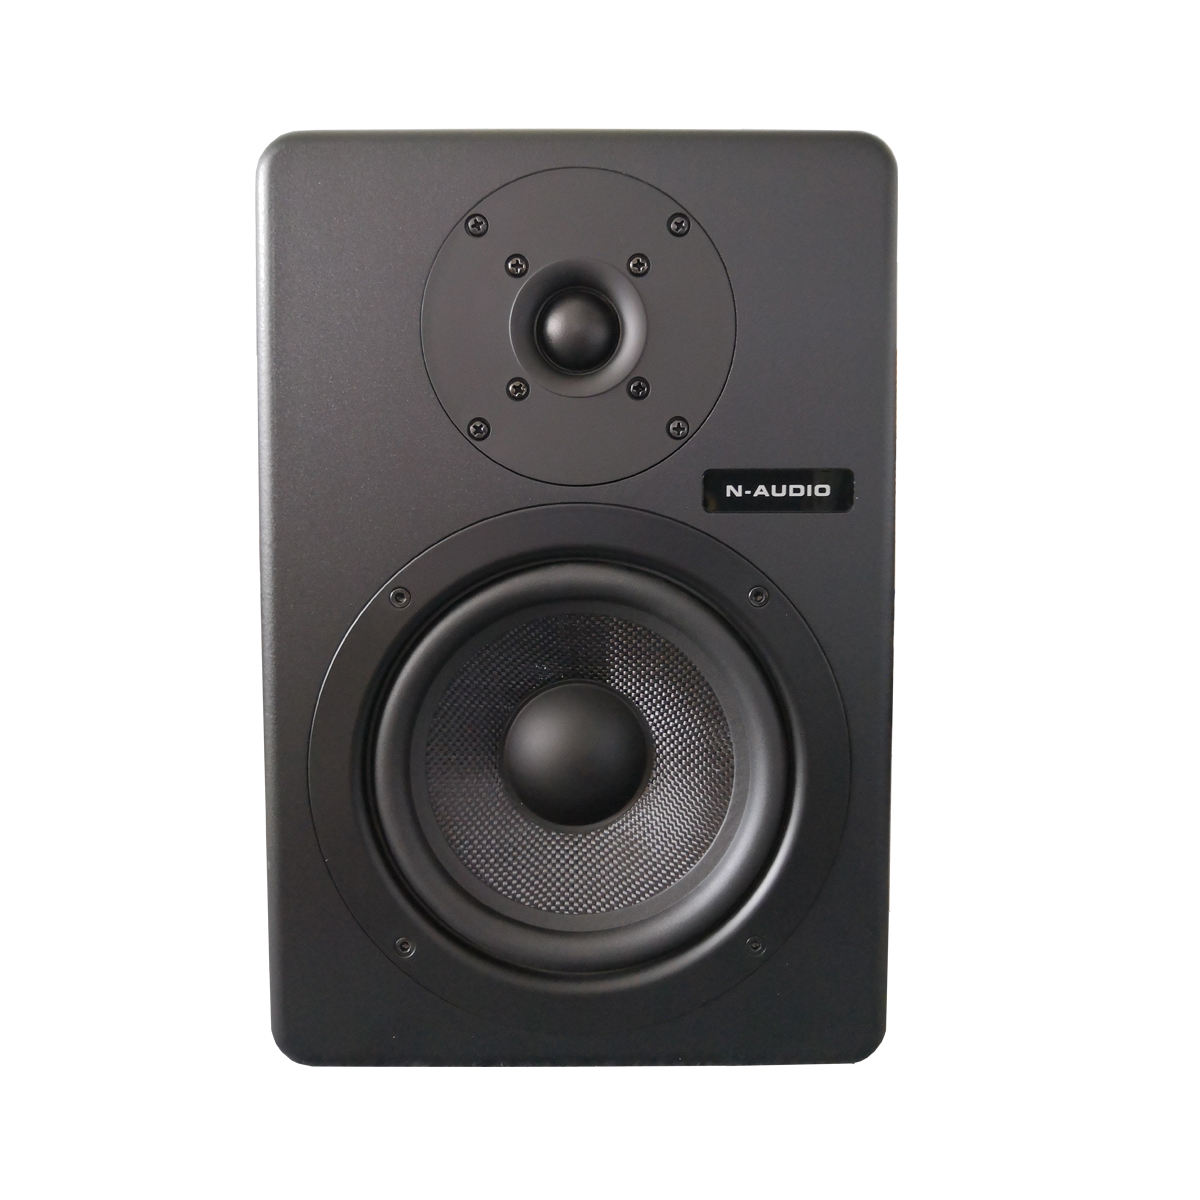 2021 Sản Xuất 130 Wát 6-Inch 2 Way Active Studio Monitor